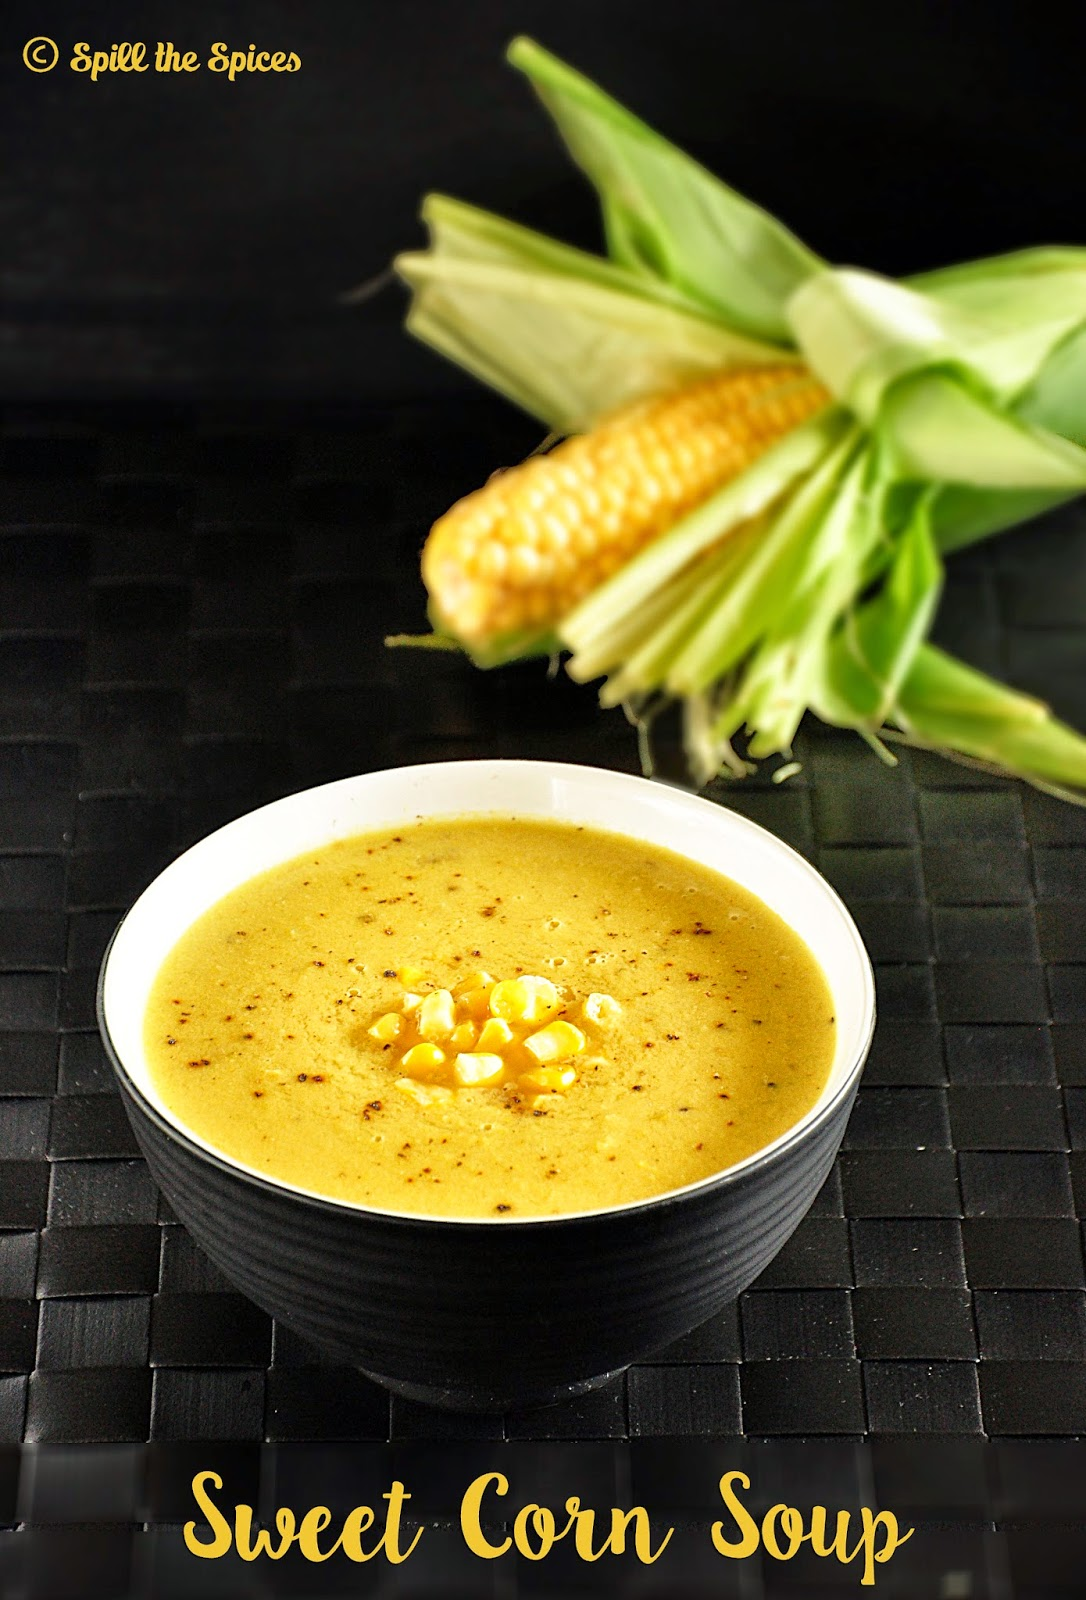 Sweet Corn Soup | Spill the Spices